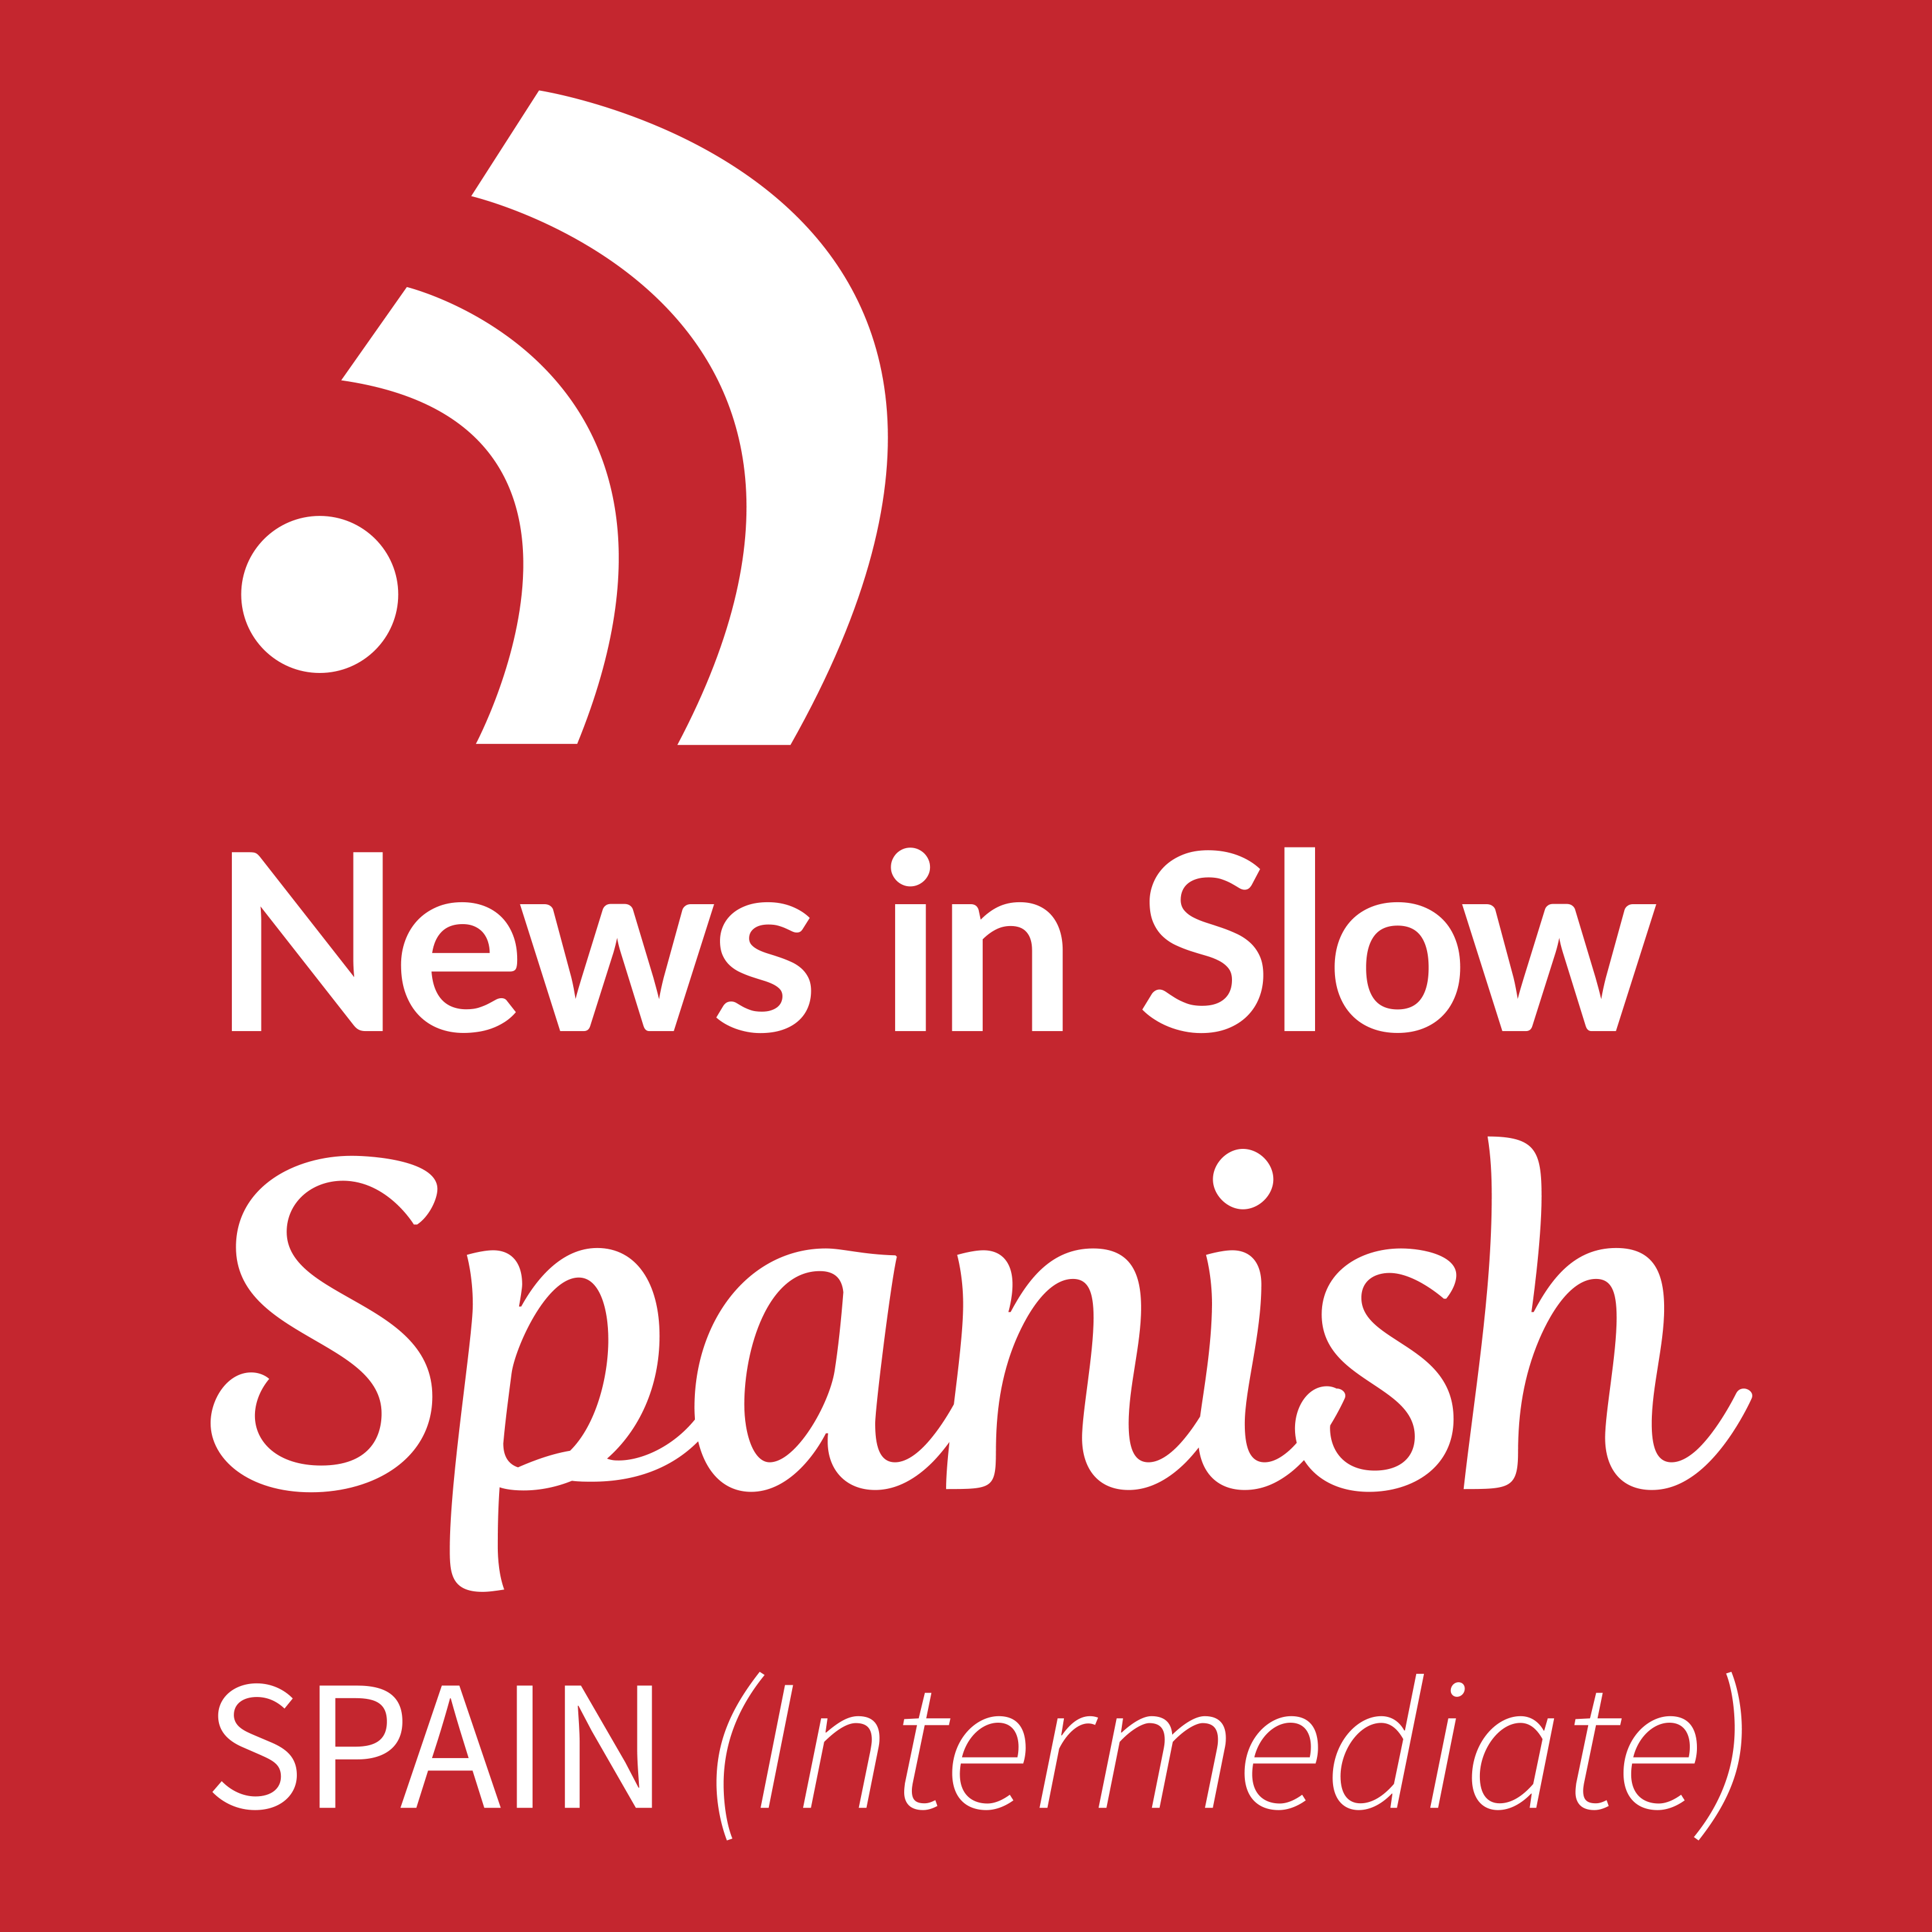 News in Slow Spanish - #390 - Learn Spanish through current events